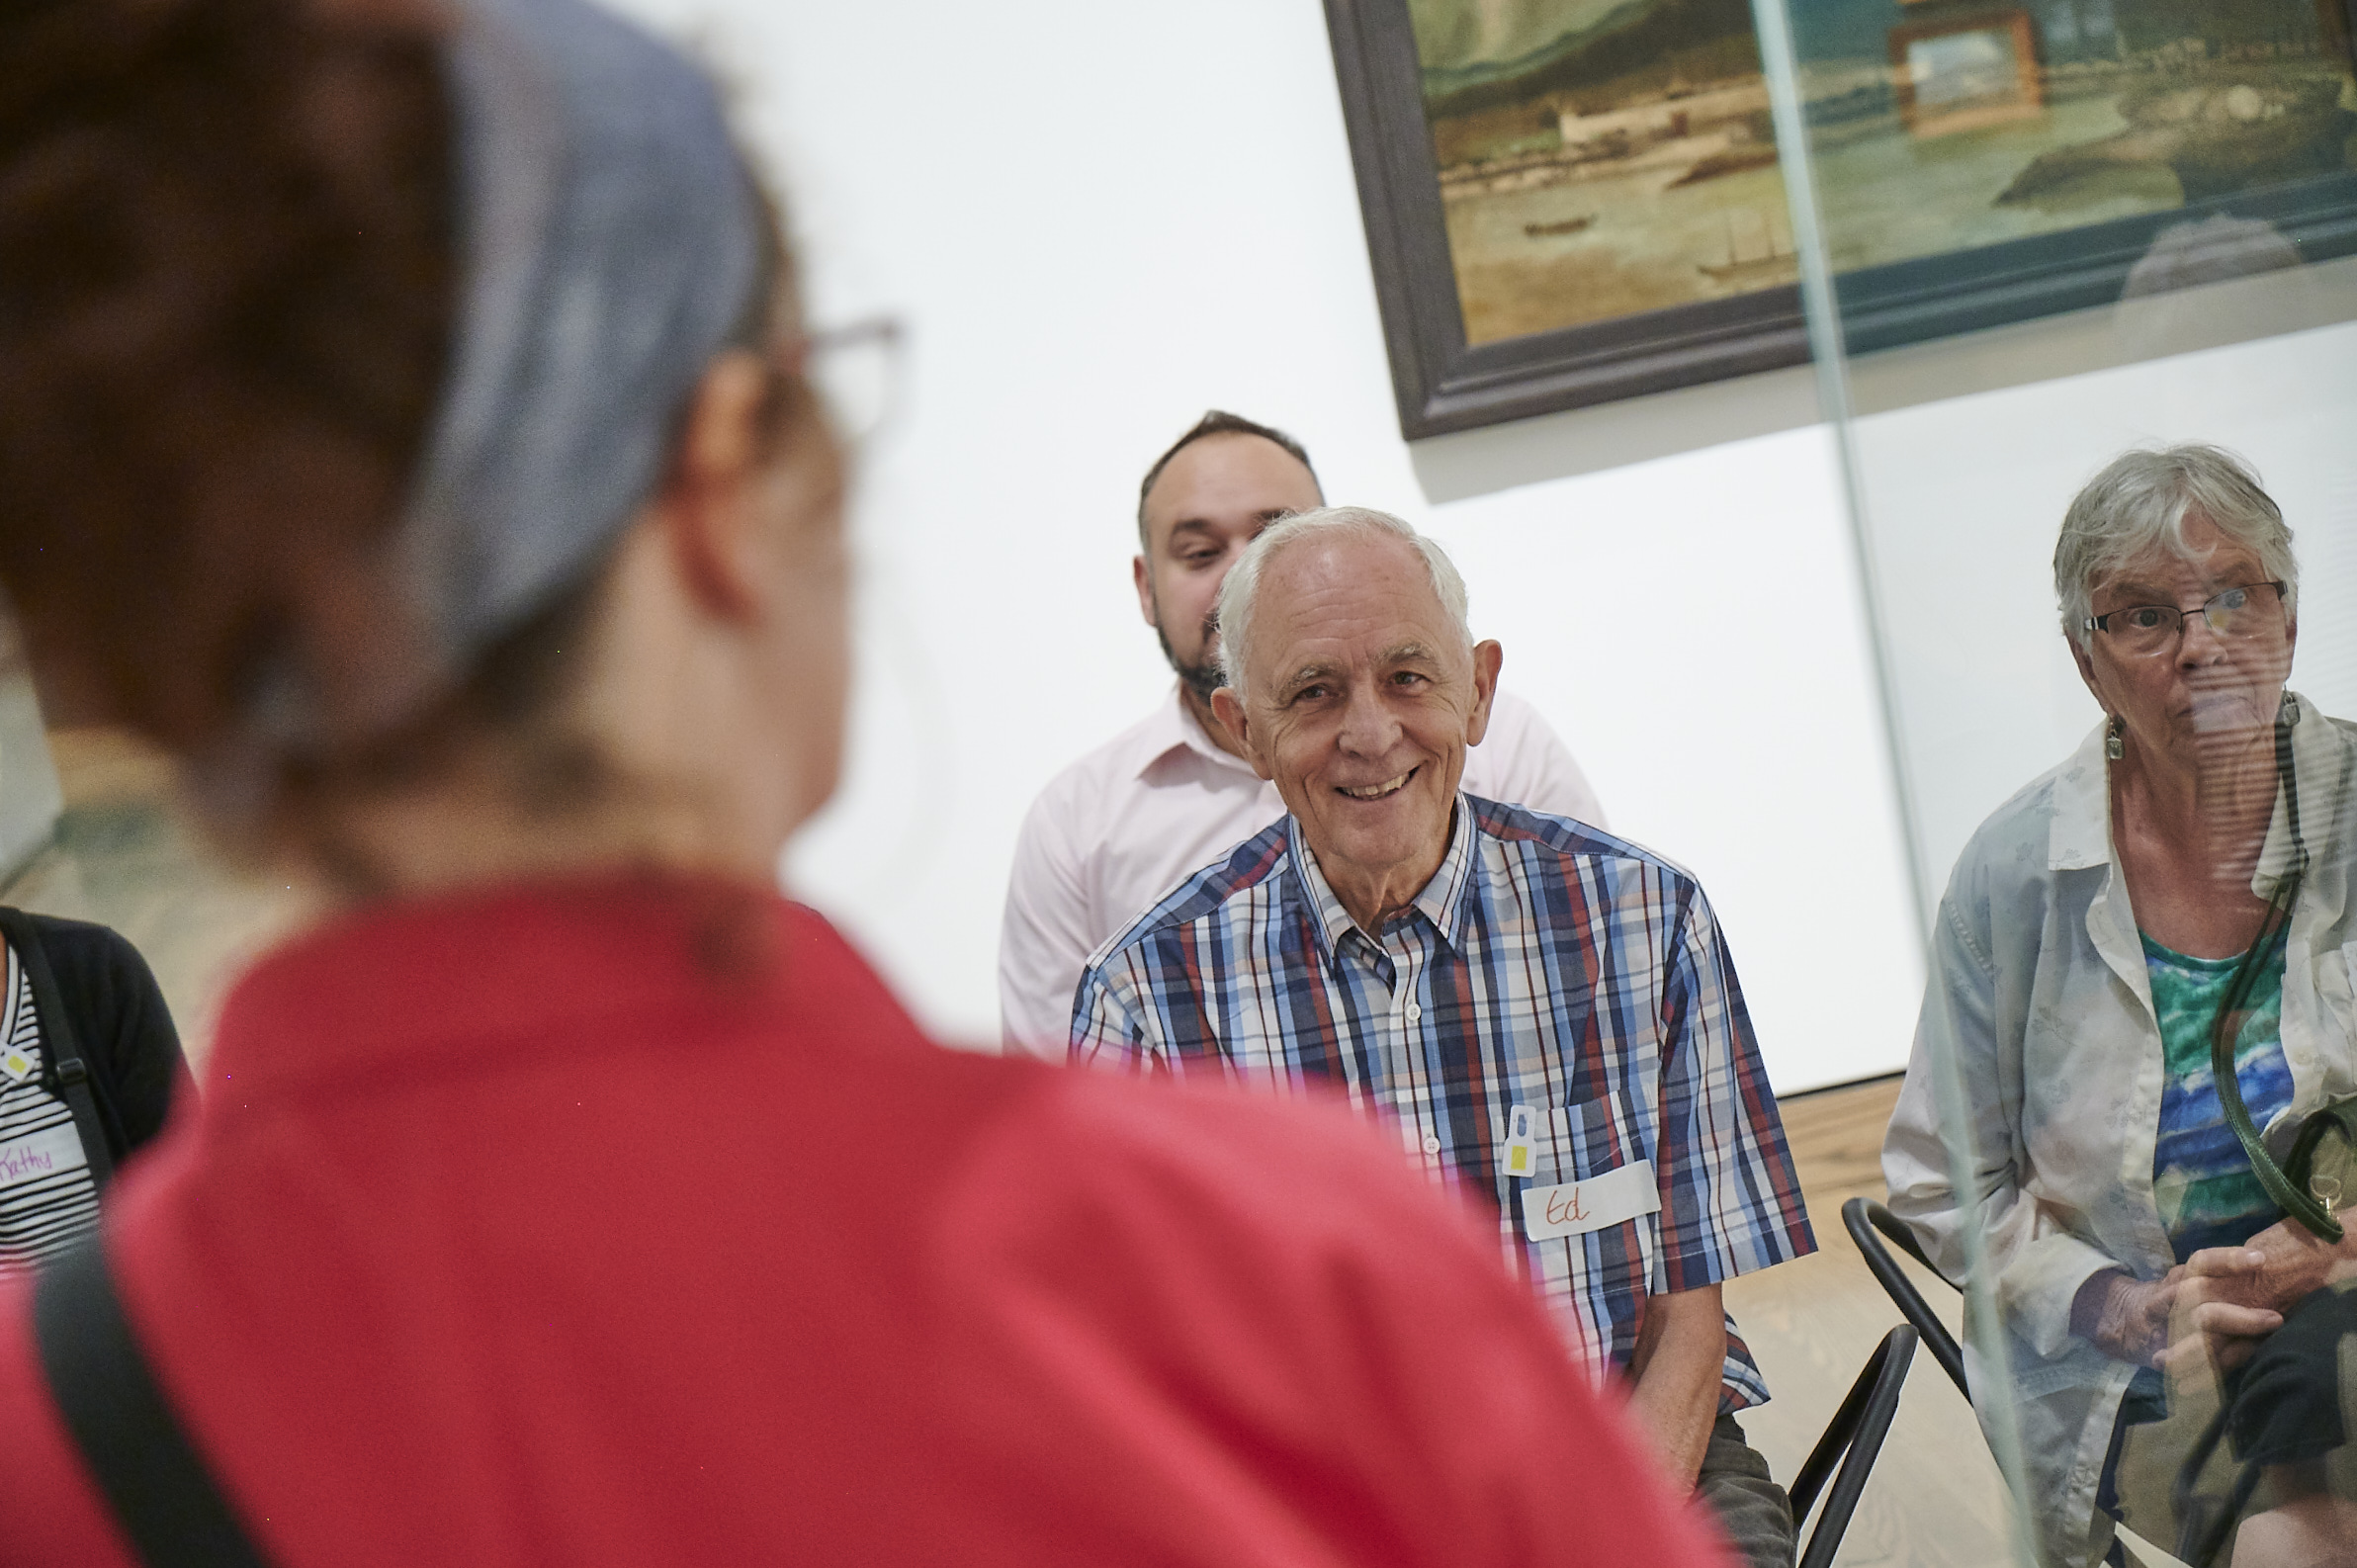 people looking at art in a gallery